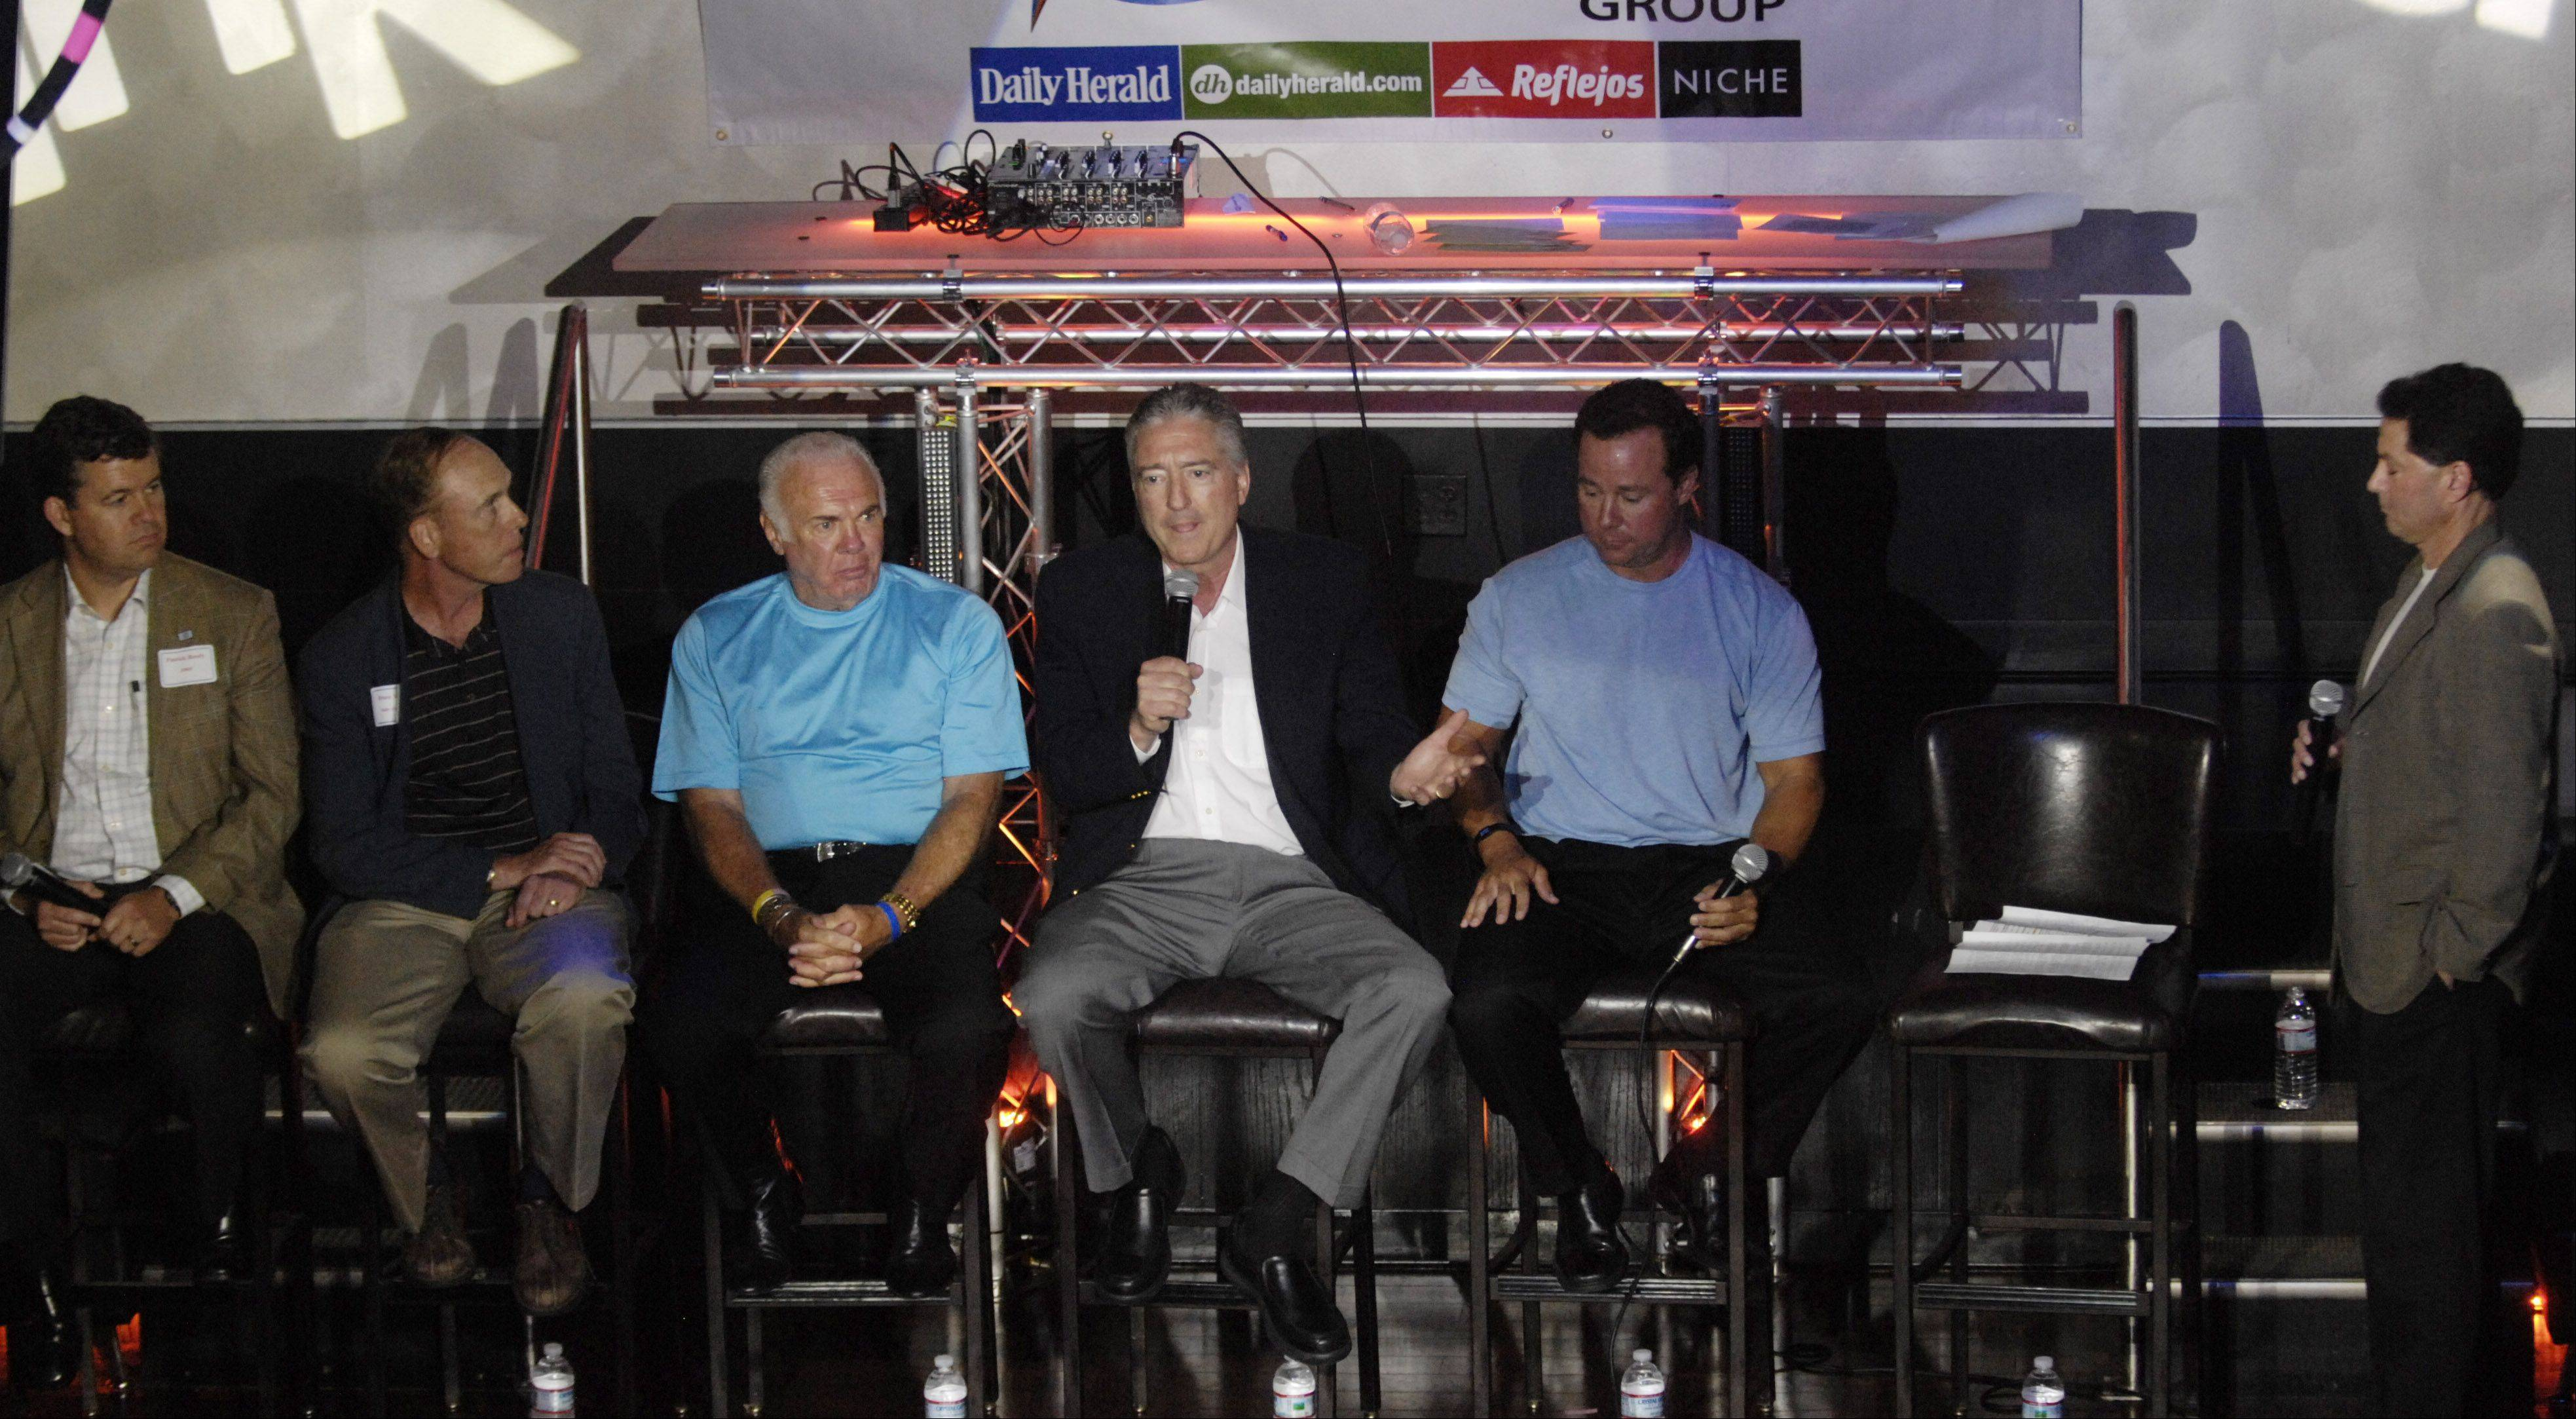 WGN/Cubs radio broadcaster Pat Hughes, speaks during a Subscriber Total Access event celebrating the life of Ron Santo, at Drink Nightclub in Schaumburg Thursday.